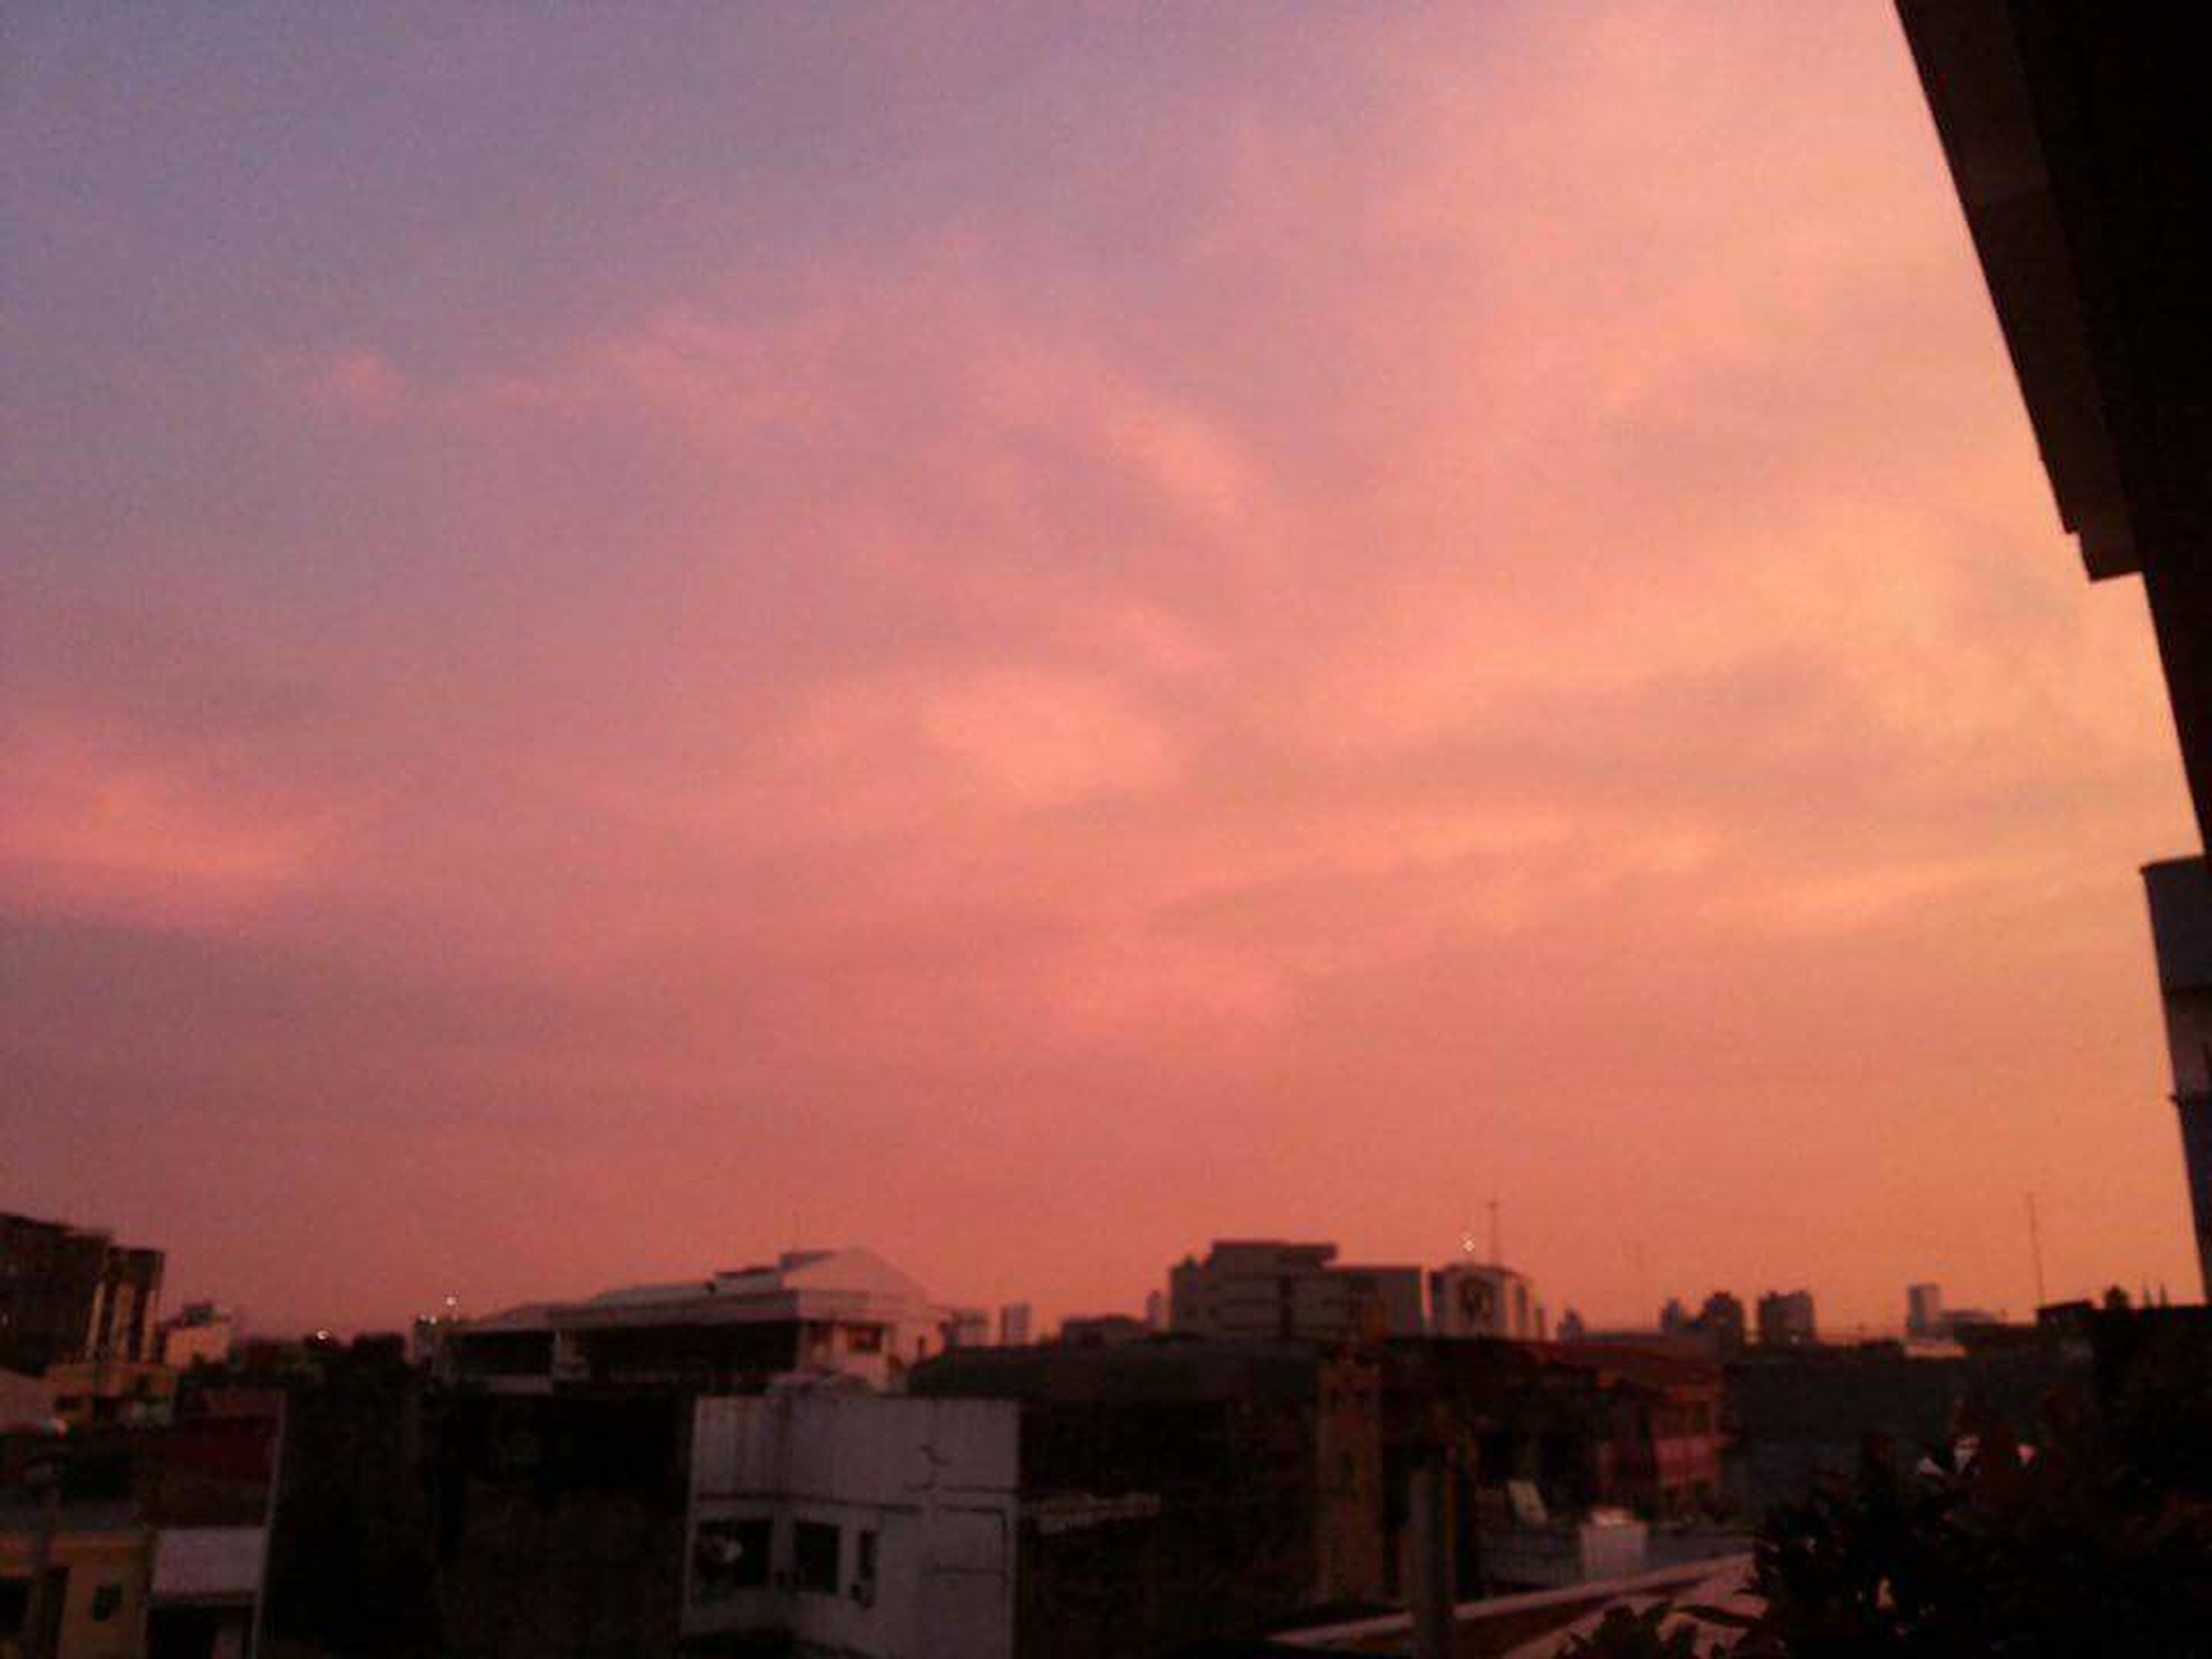 architecture, building exterior, built structure, city, residential building, sunset, residential structure, sky, cityscape, city life, cloud - sky, residential district, cloud, romantic sky, apartment, building story, town, outdoors, orange color, no people, high section, development, tall - high, wide shot, storm cloud, dramatic sky